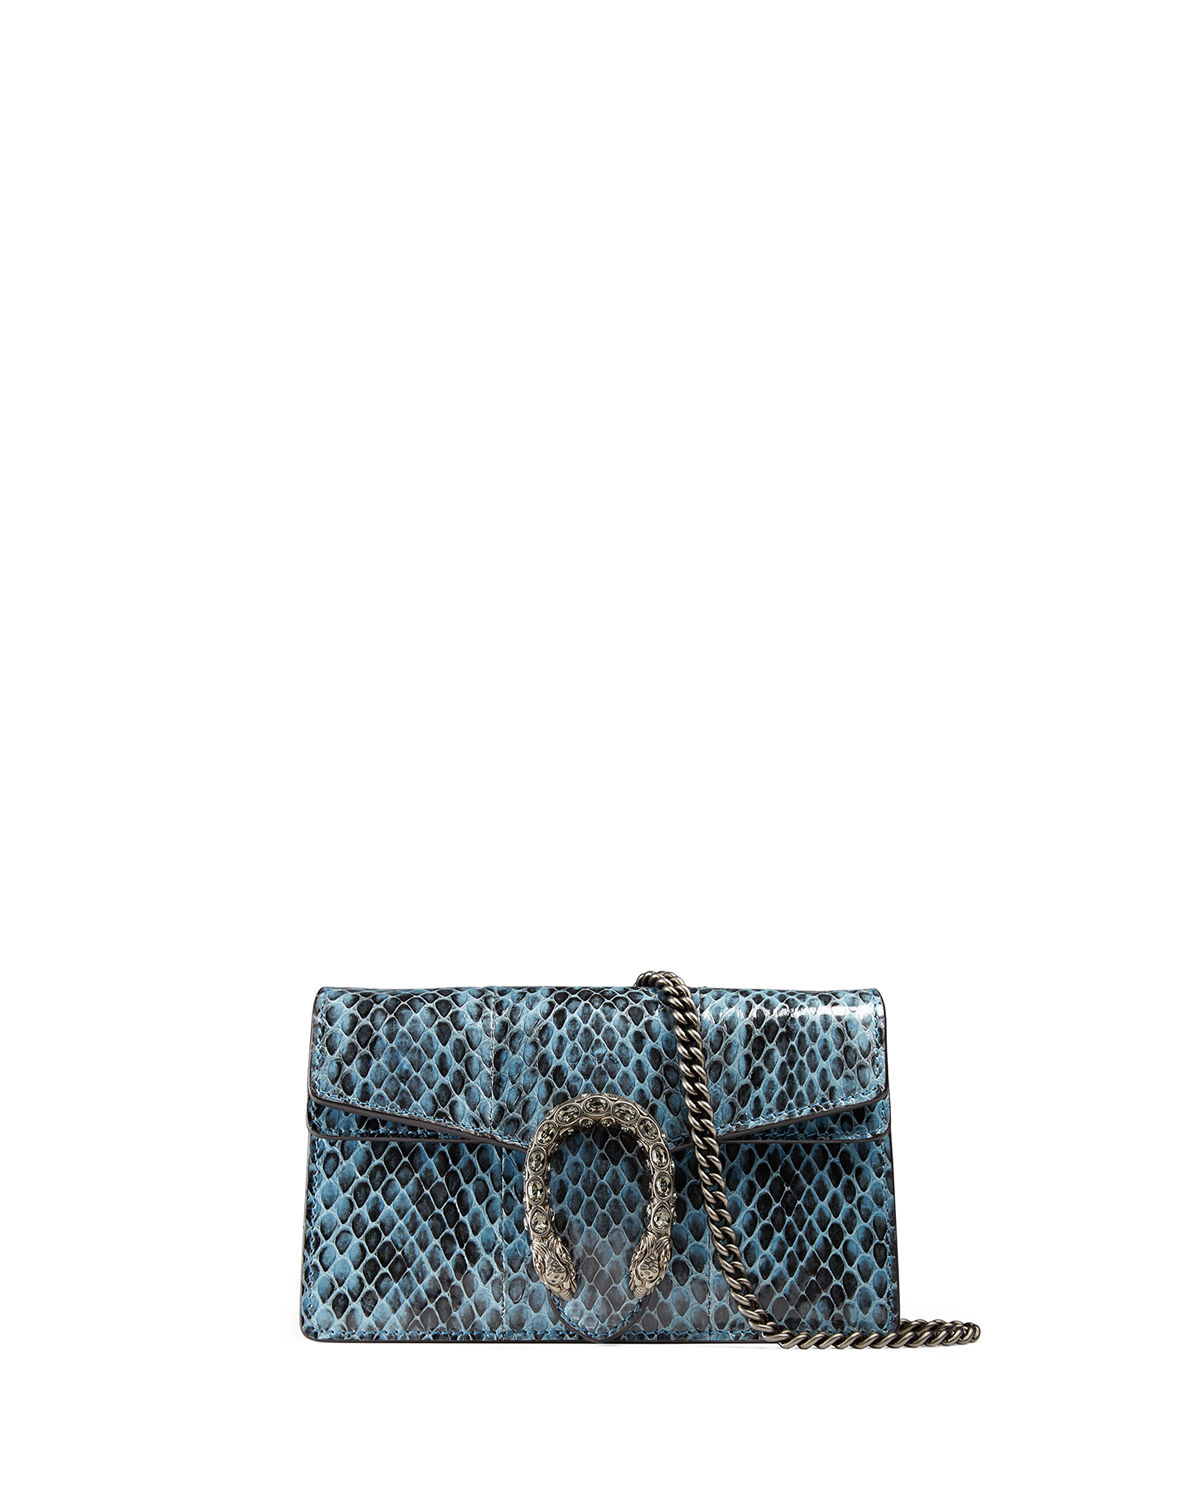 777ef50a294 Gucci Dionysus Snakeskin Super Mini Bag